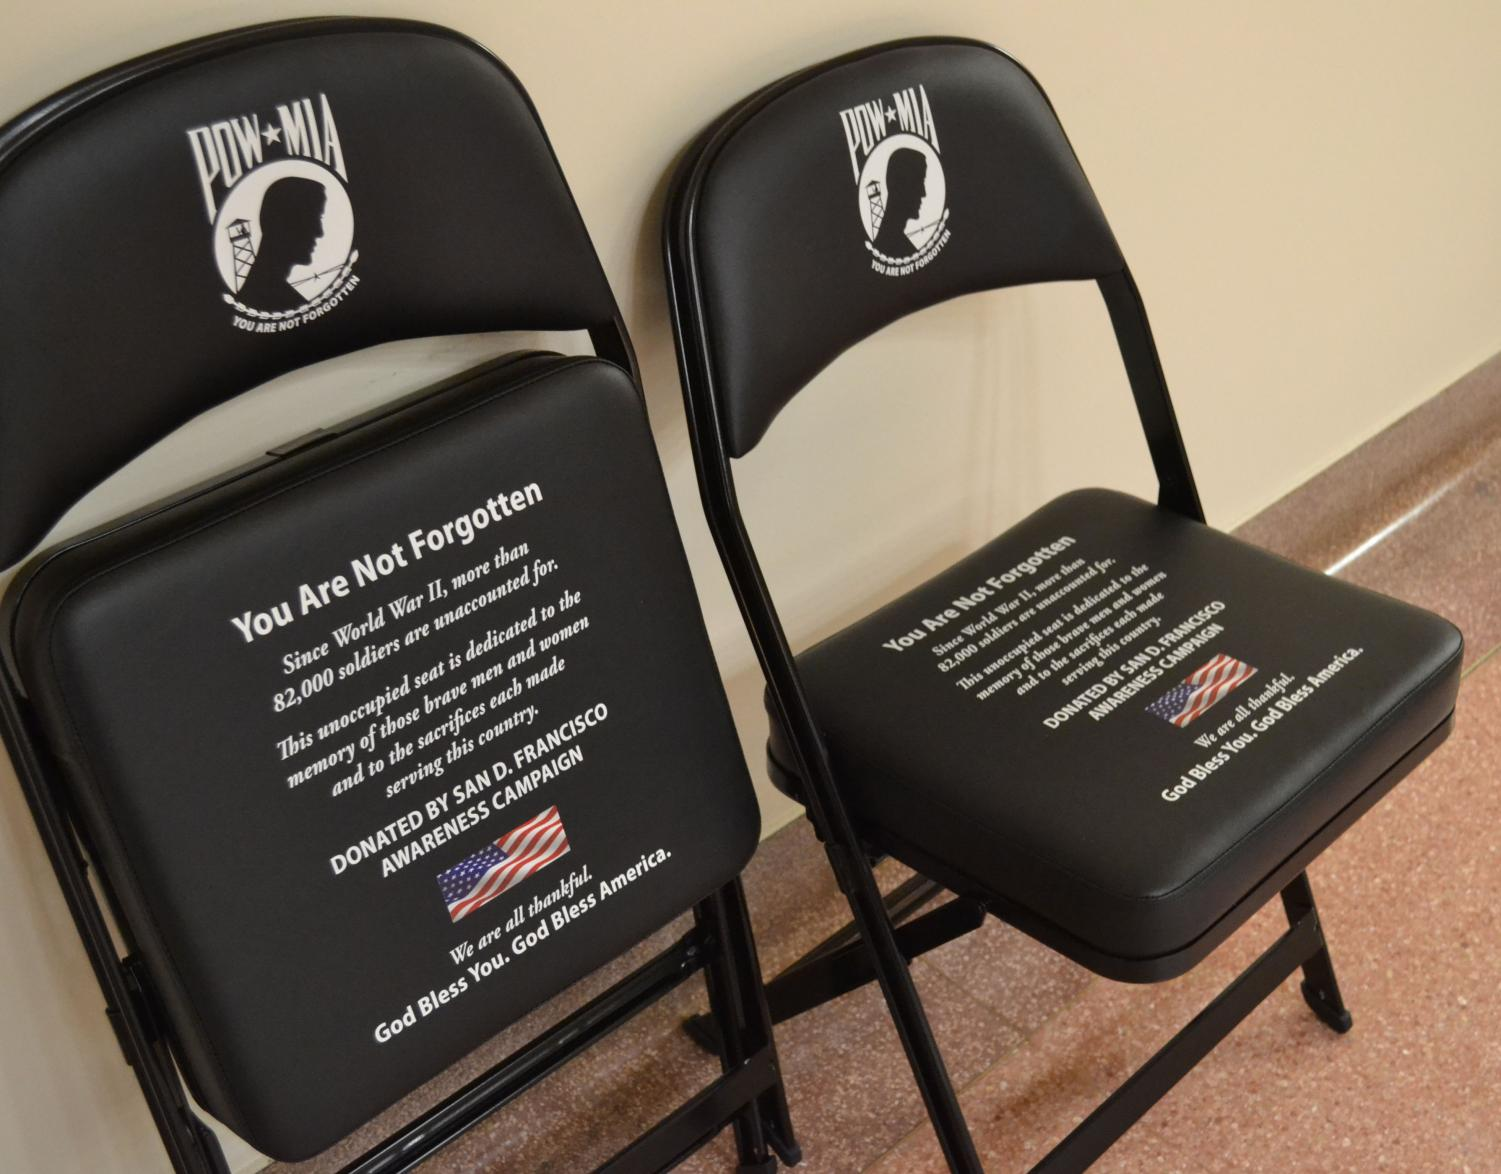 These chairs are to remain unoccupied to honor the soldiers that didn't come home. One chair will be sent to the Veterans Center at CWU and the other will split its time between the different CWU ROTC departments.